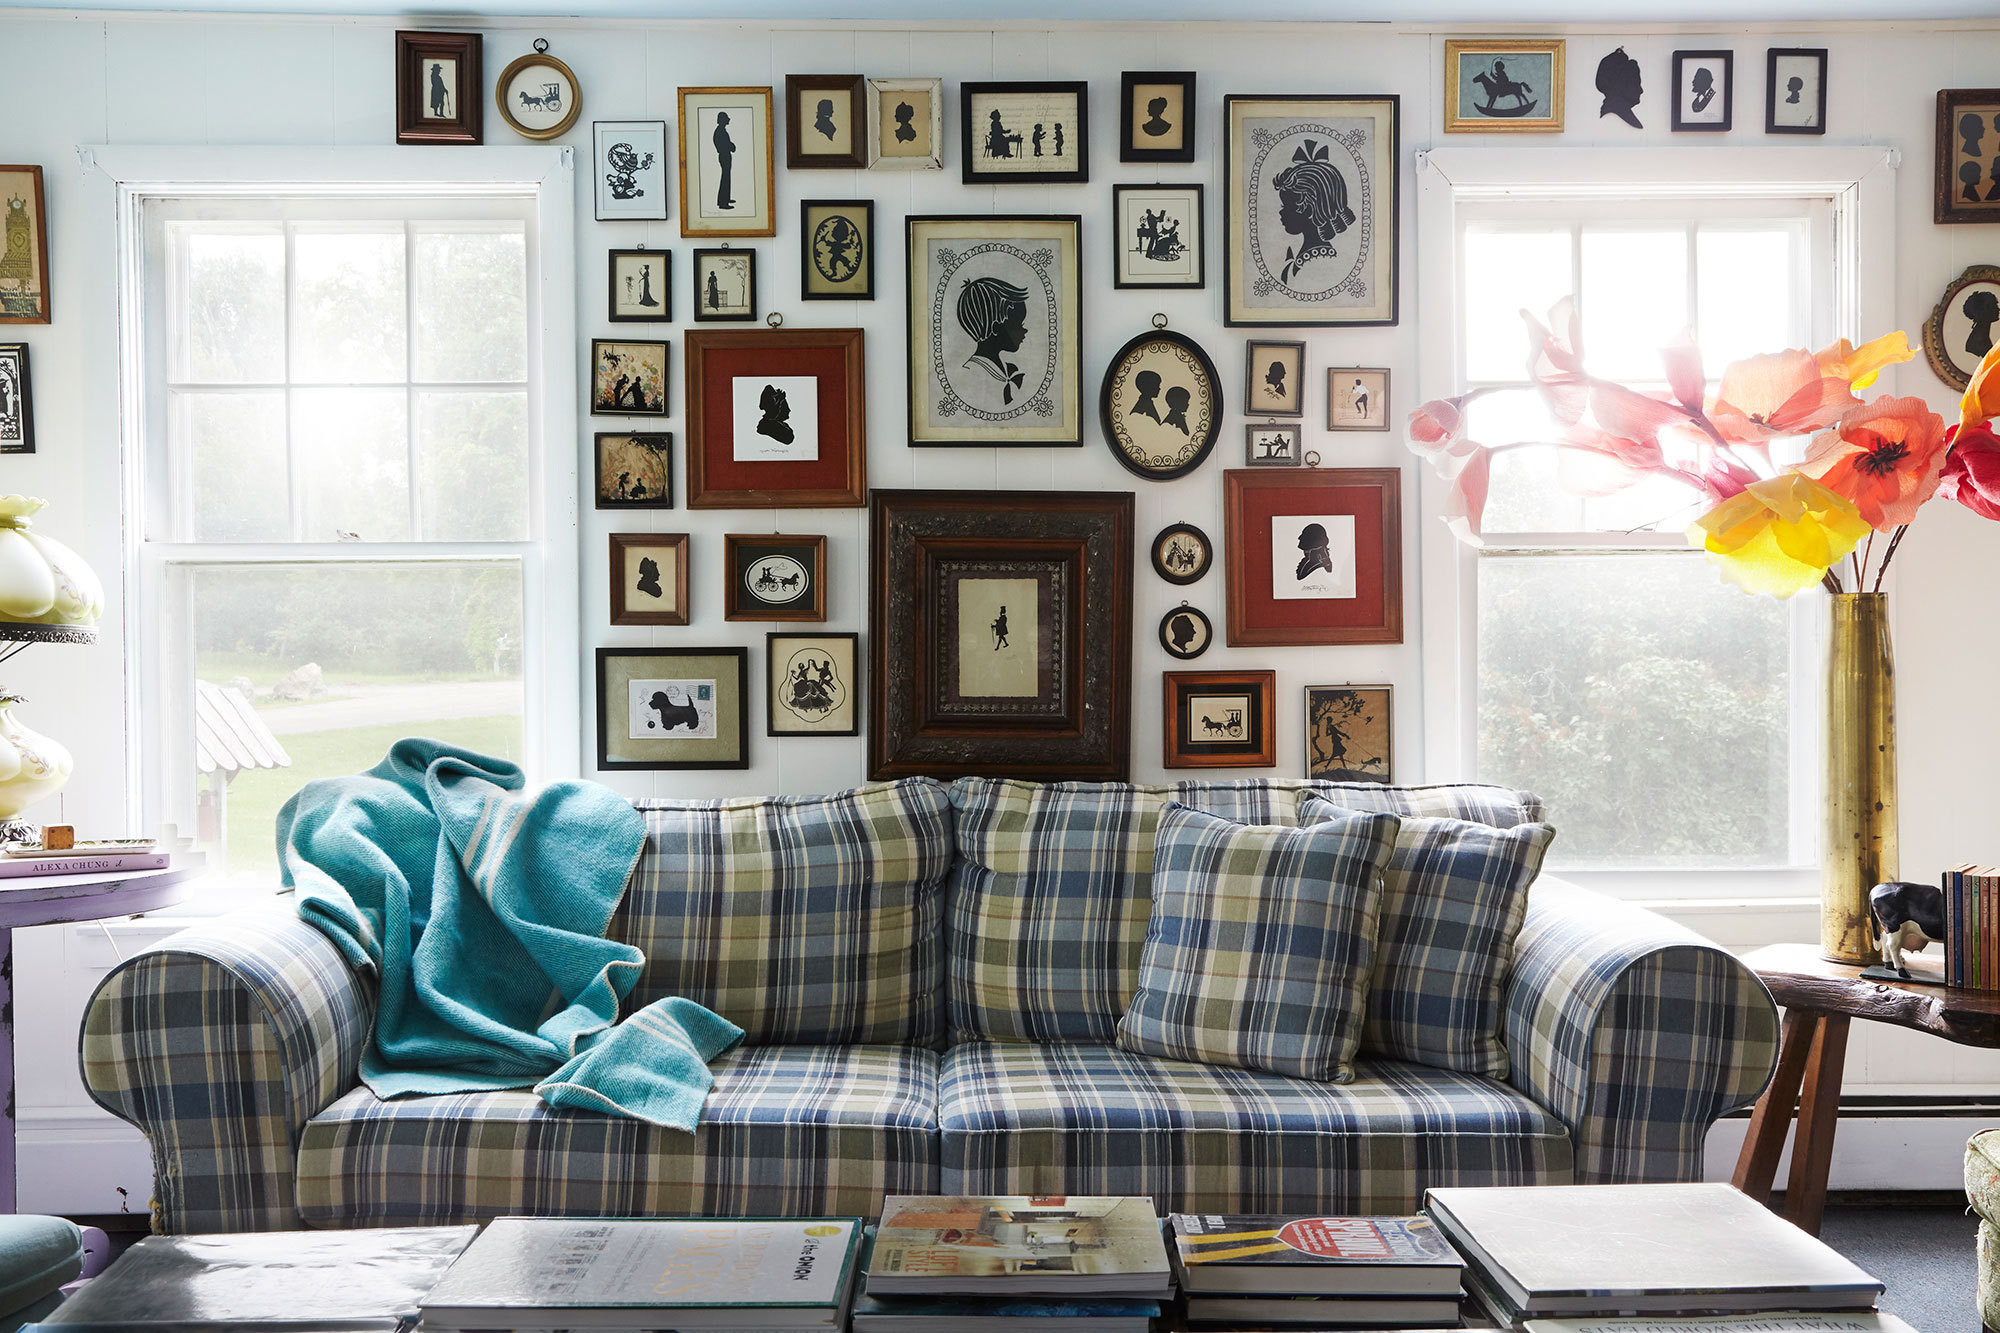 A collection of cameo portraits dominates the living area in the guesthouse of Tata Harper's Vermont farm.